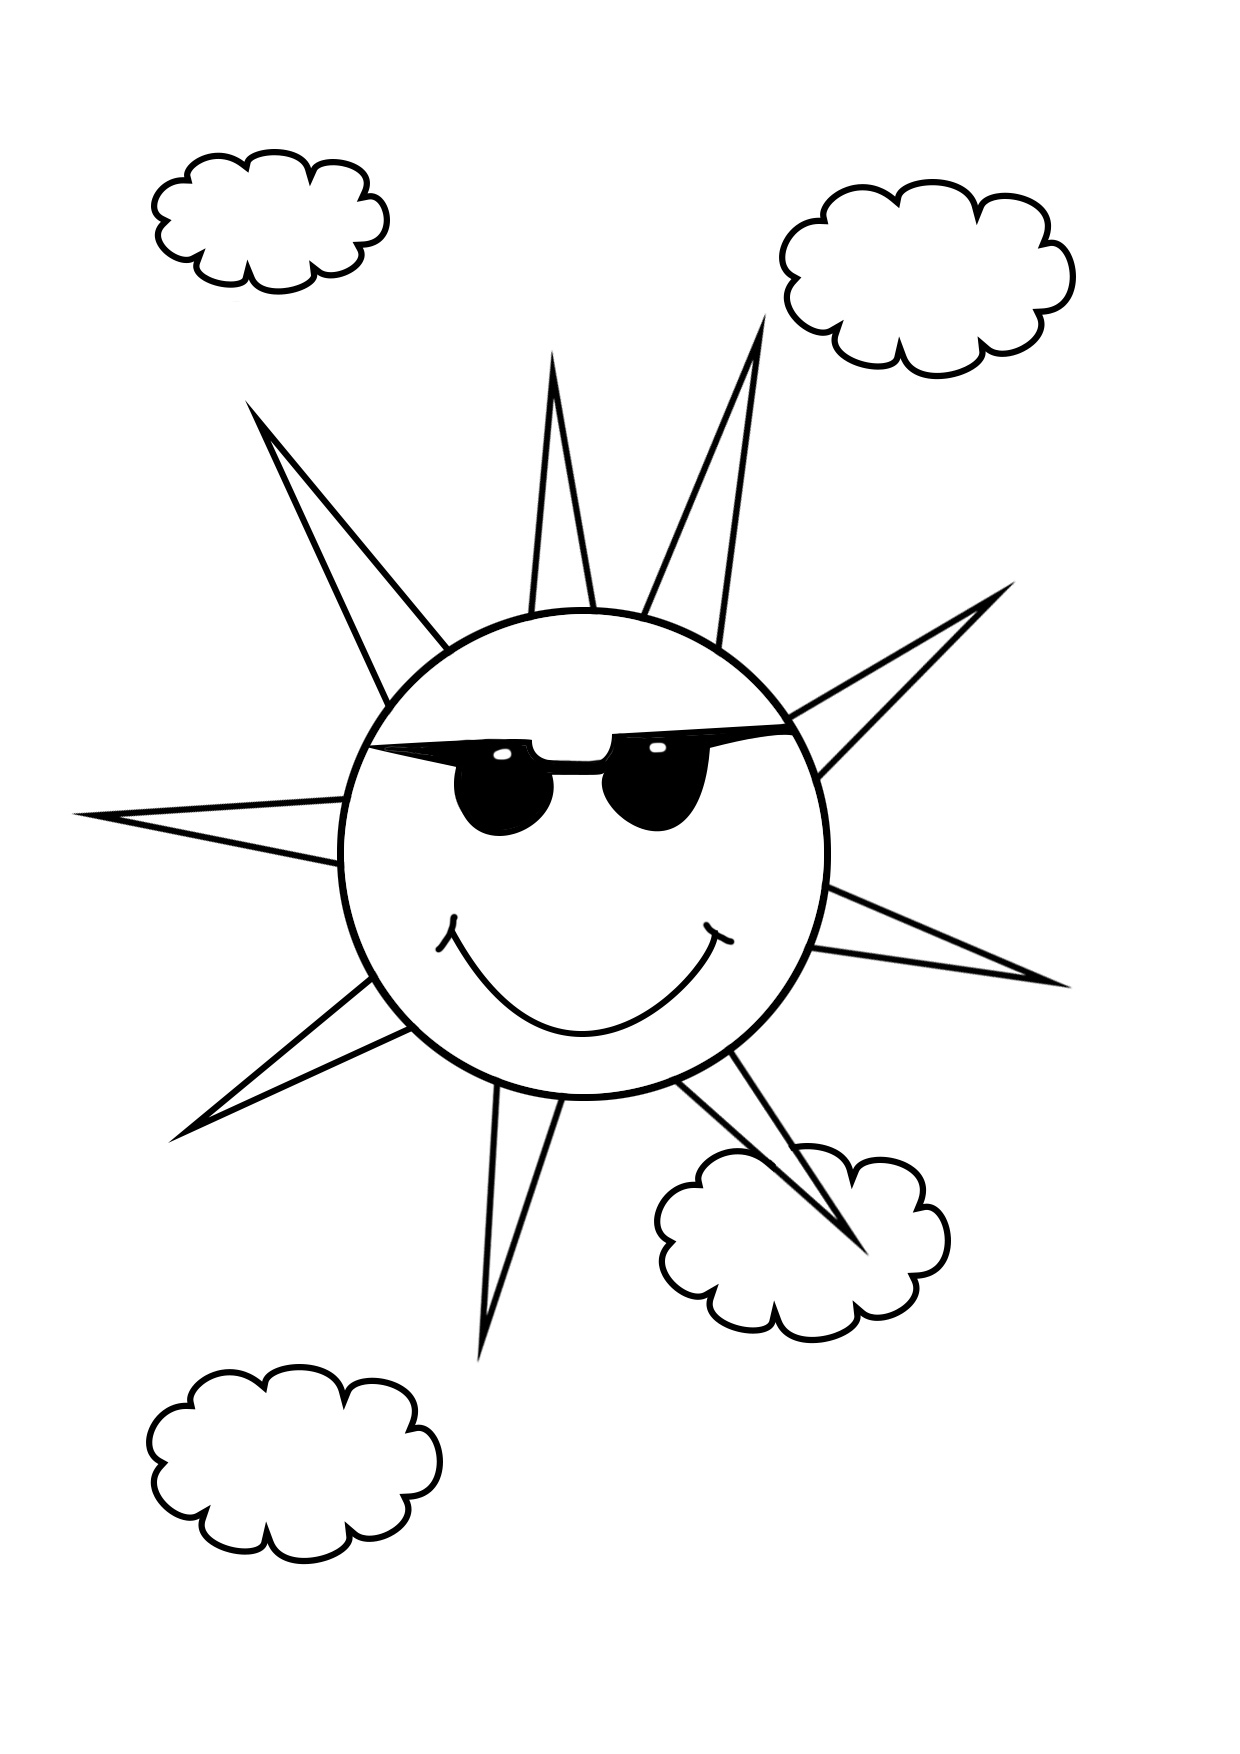 sun with sunglasses coloring page sun glasses coloring page inspirational 6 best sun glasses sun coloring sunglasses with page